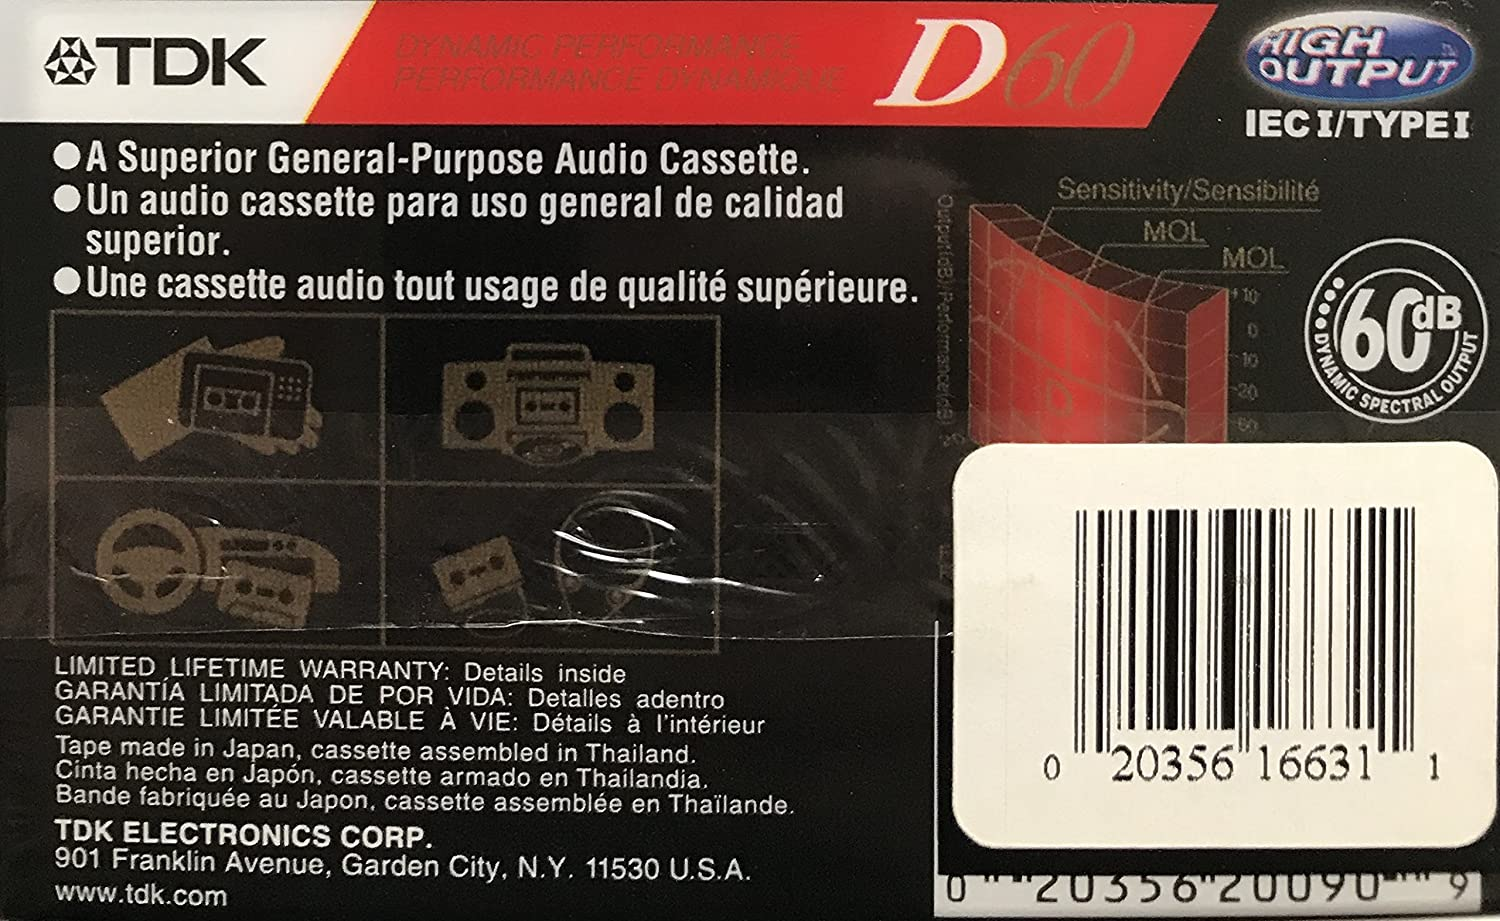 Amazon.com: TDK D60 IECi/TypeI High Output Blank Cassette Tape: Home Audio & Theater